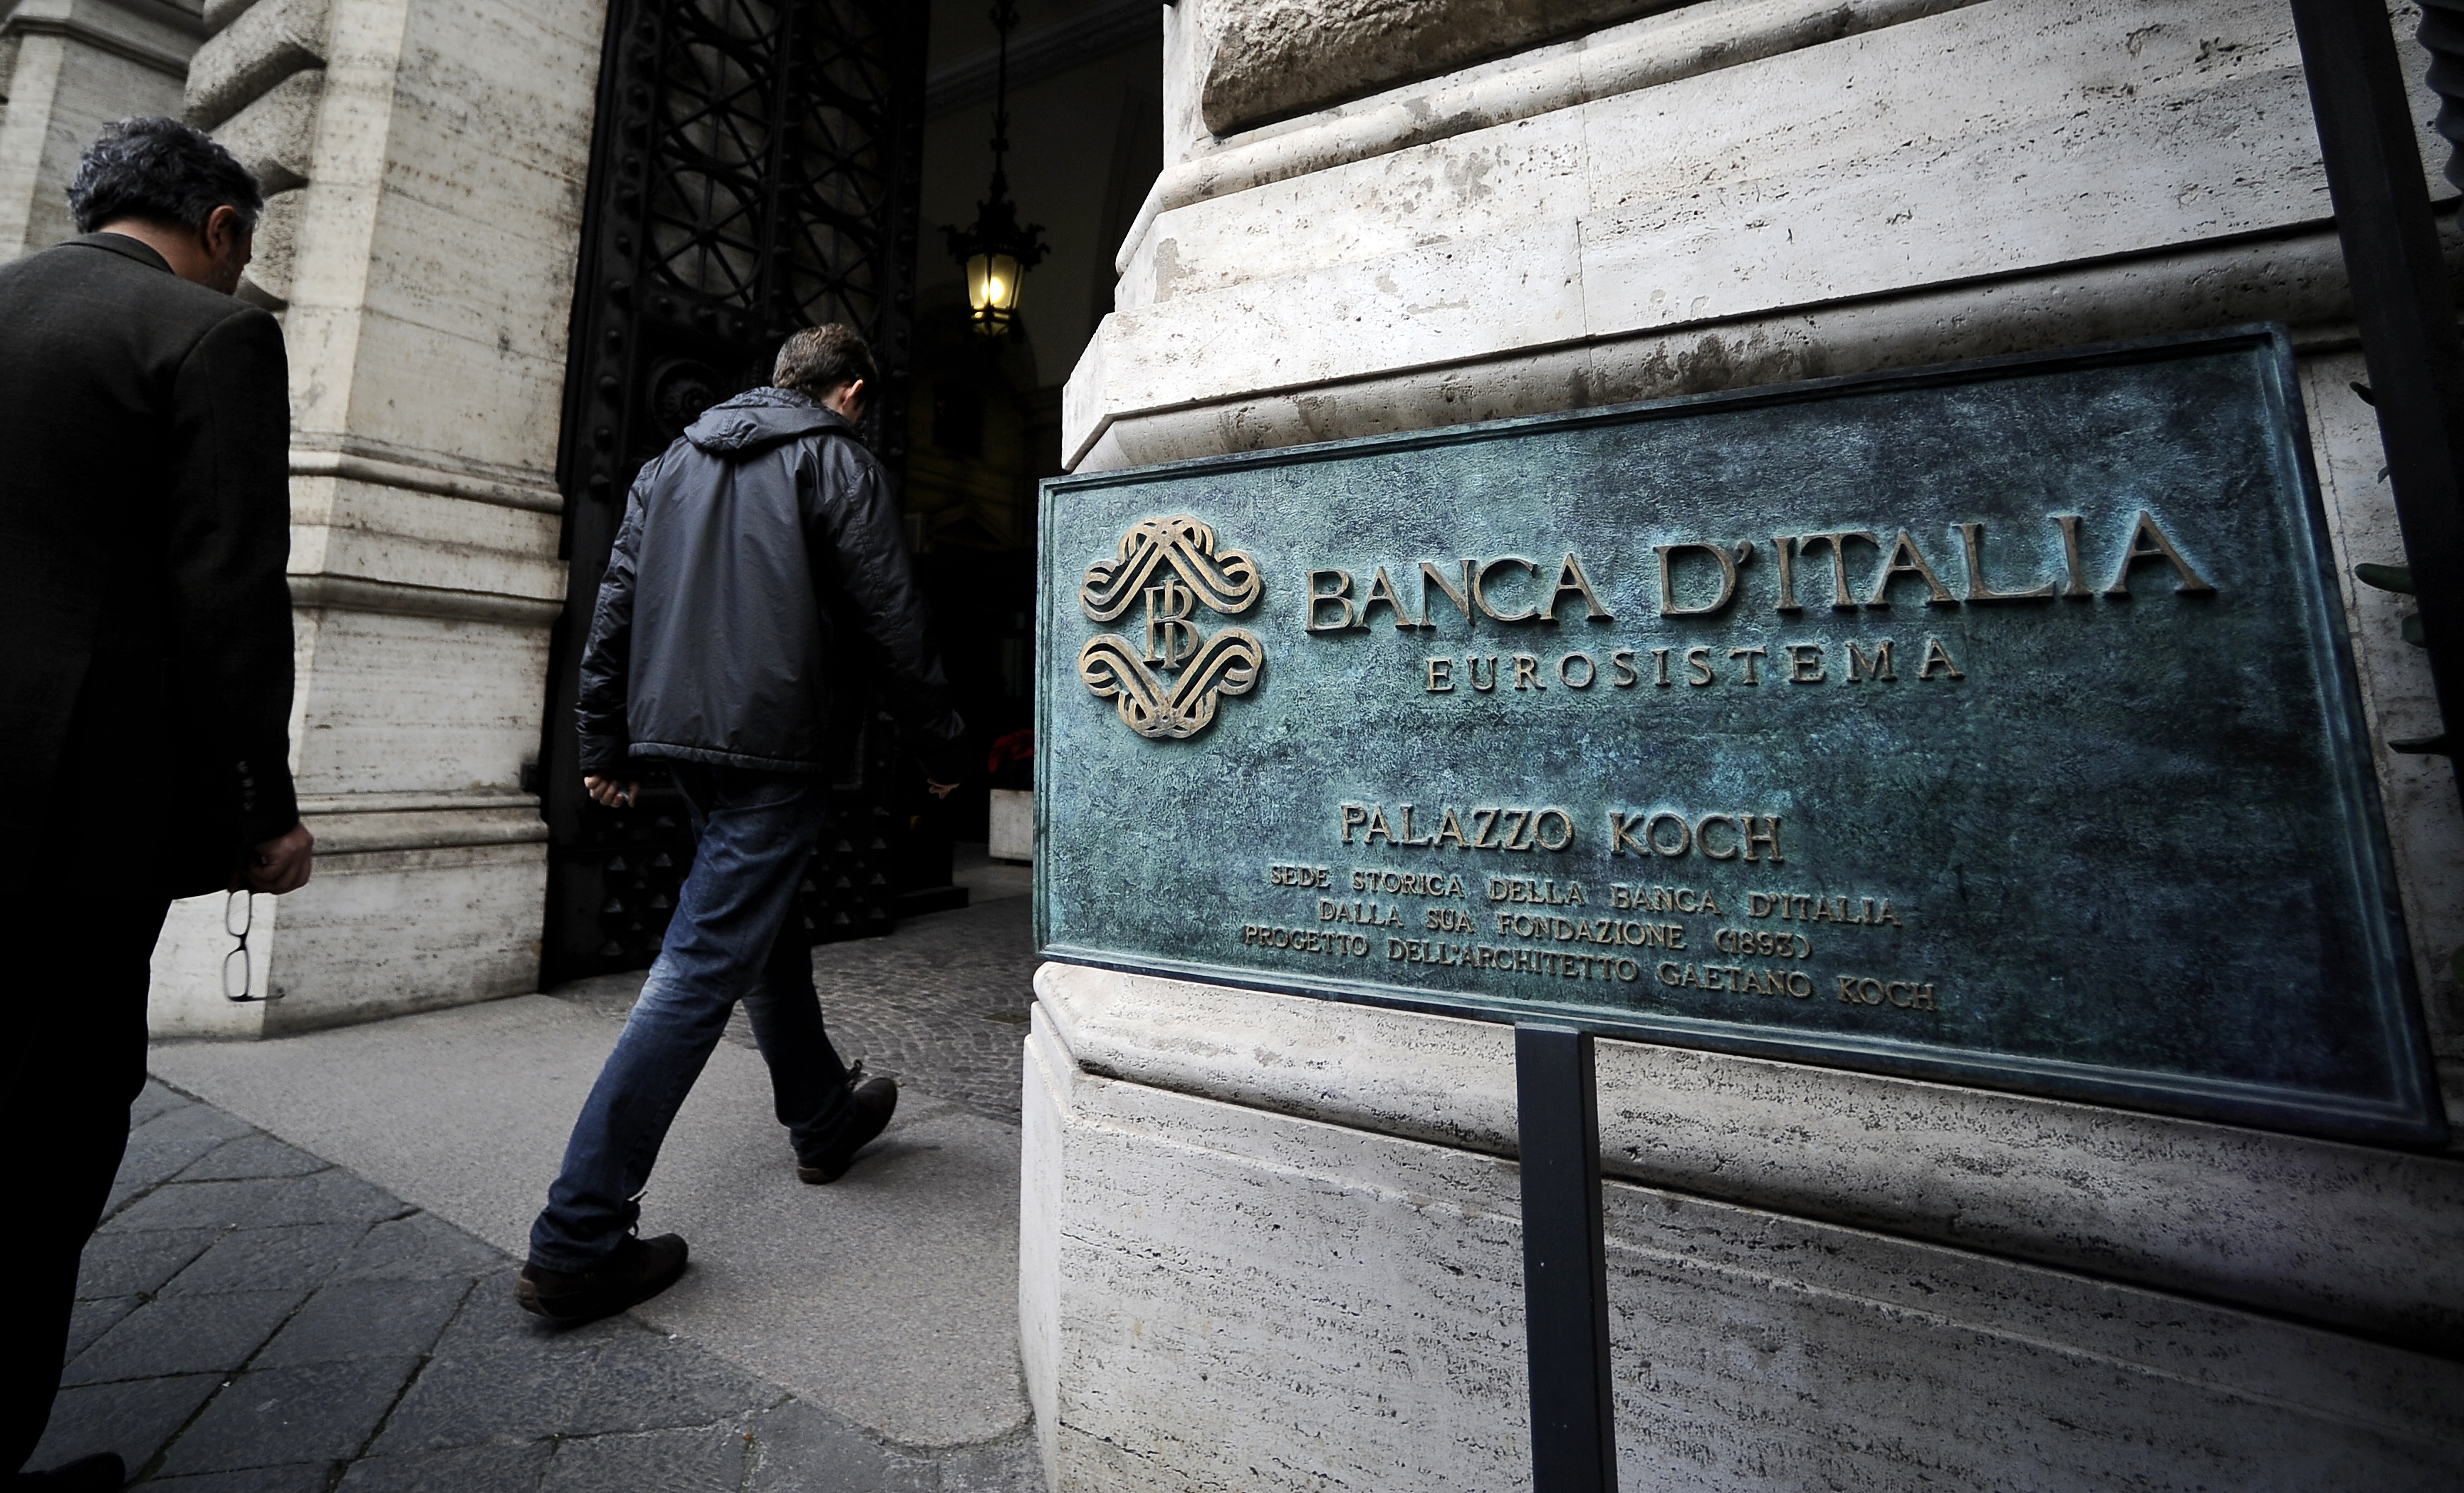 """People enter the Bank of Italy in Rome where a conference in honour of the late economist Tommaso Padoa-Schioppa takes place on December 16, 2011. Italy's Prime Minister Mario Monti said Padoa-Schioppa, a former Italy's finance minister and commonly considered a founding father of the euro, had understood """"the need for Europe to strengthen policy apparatus around fiscal policy but to go beyond towards communitarian policies for growth."""" AFP PHOTO / FILIPPO MONTEFORTE (Photo credit should read FILIPPO MONTEFORTE/AFP/Getty Images)"""